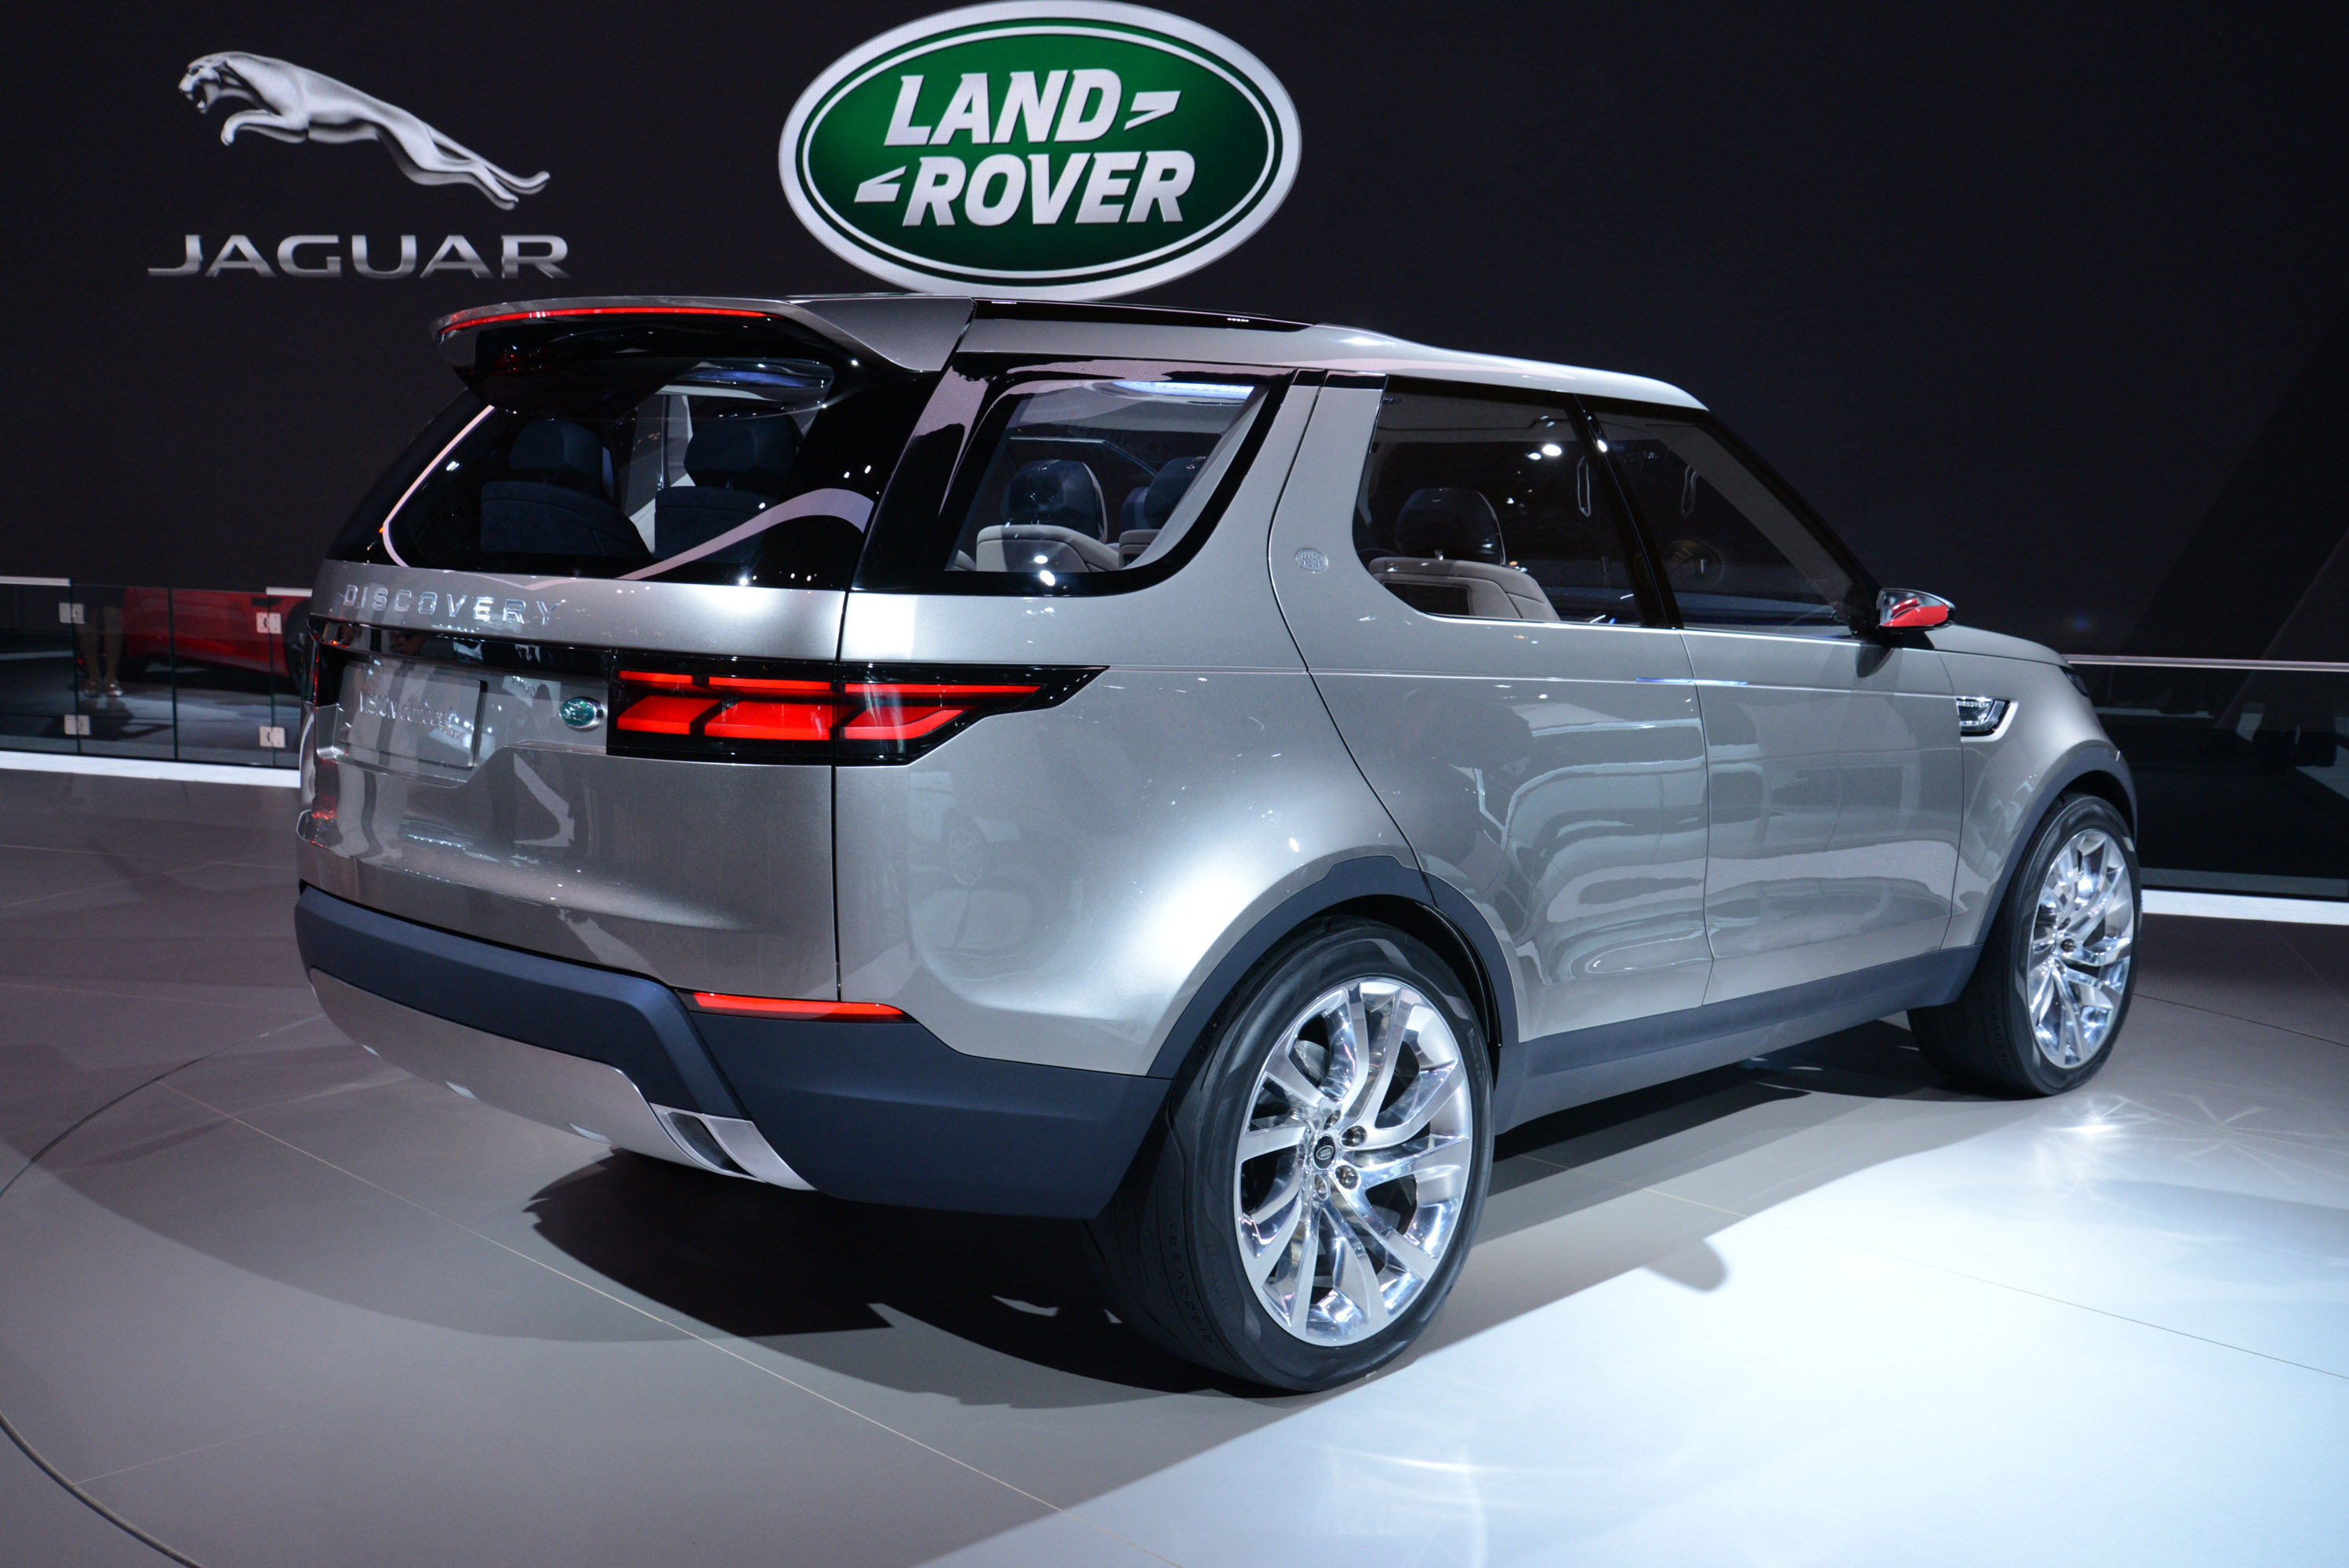 https://www.automobilesreview.com/gallery/land-rover-discovery-vision-concept-new-york-2014/land-rover-discovery-vision-concept-new-york-2014-11.jpg